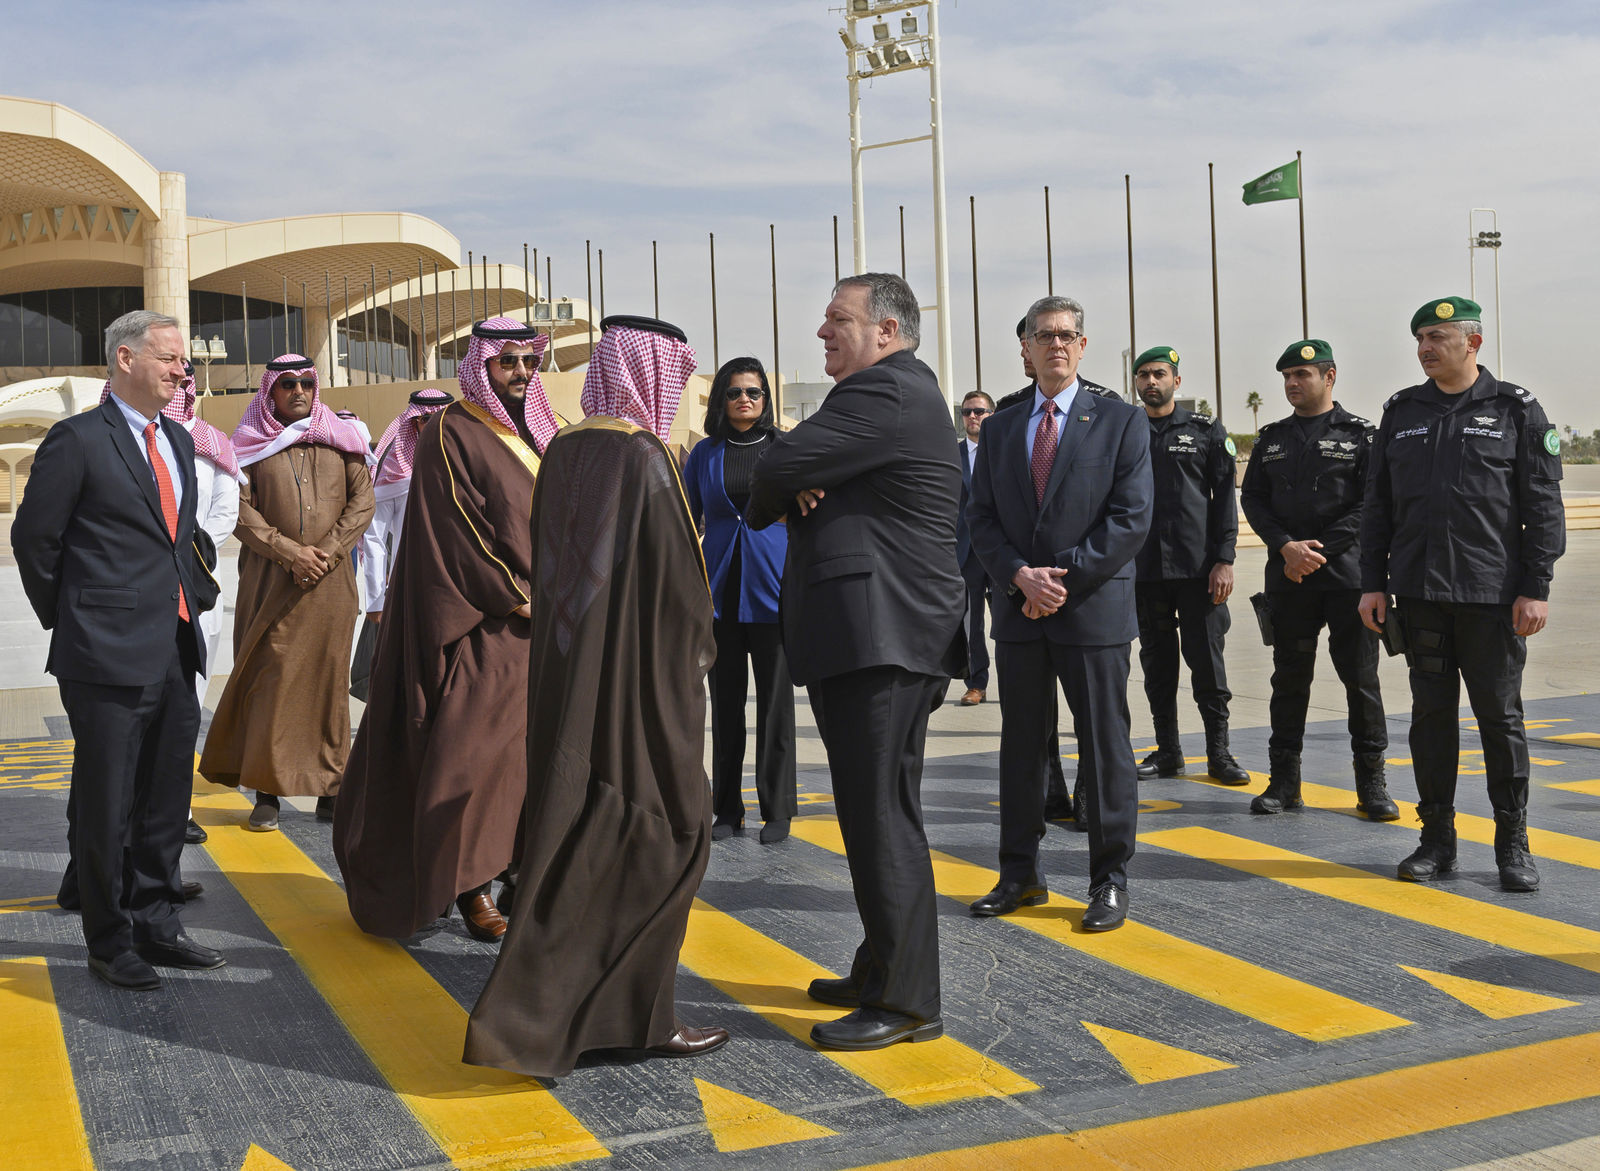 U.S. Secretary of State Mike Pompeo, center is seen off by Saudi Minister of State for Foreign Affairs Adel al-Jubeir, left, as he departs from Saudi Arabia's King Khalid International, in Riyadh, Monday, January 14, 2019. (Andrew Cabellero-Reynolds/Pool via AP)